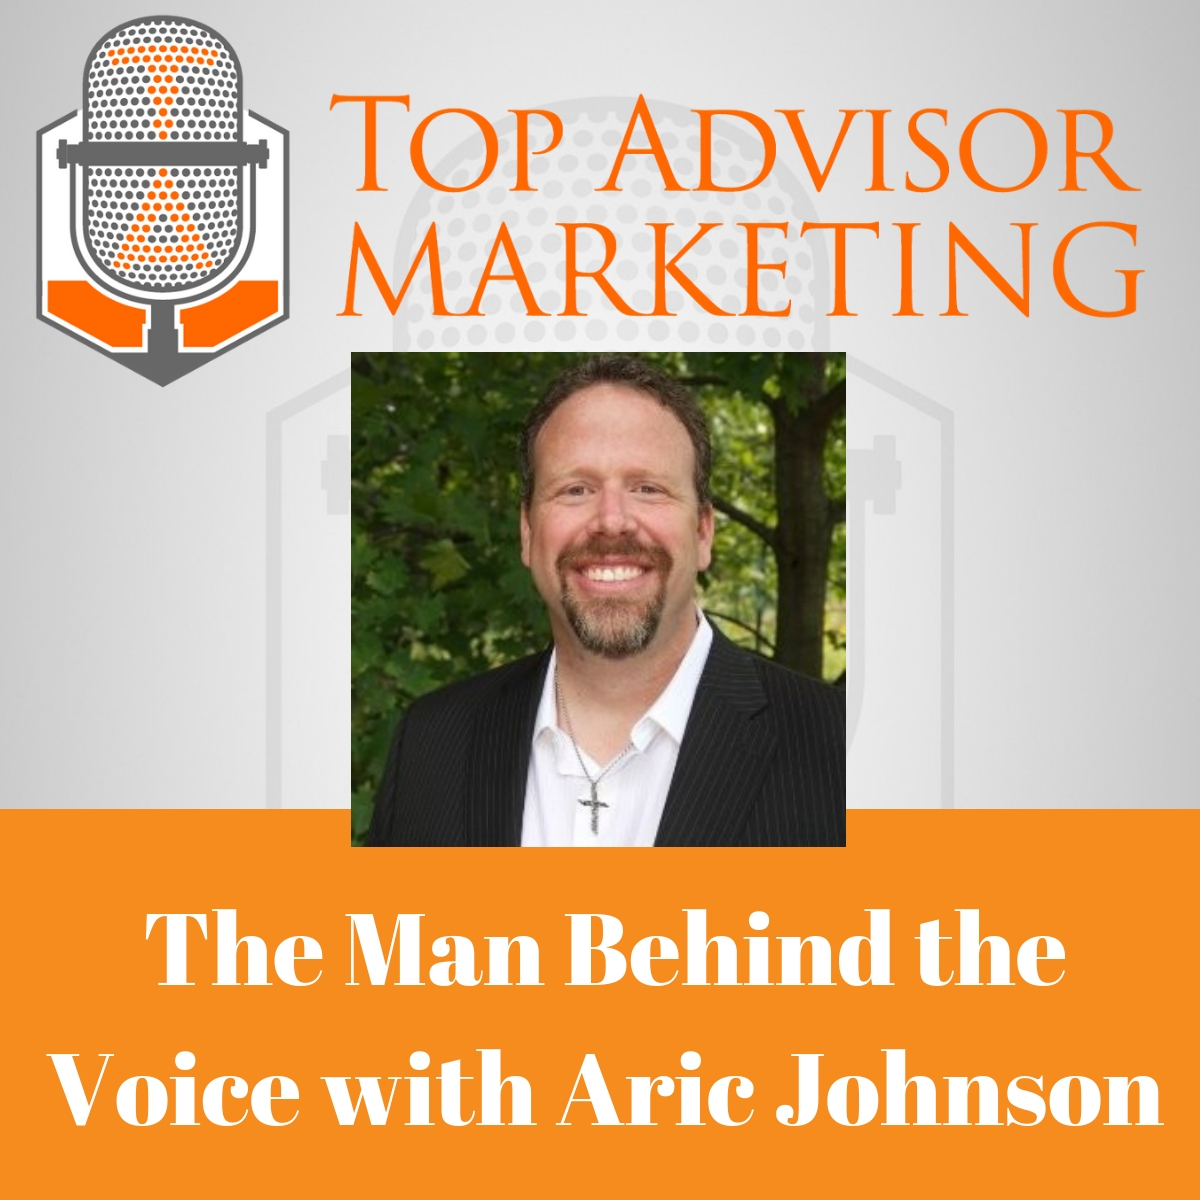 Episode 136 - The Man Behind the Voice with Aric Johnson